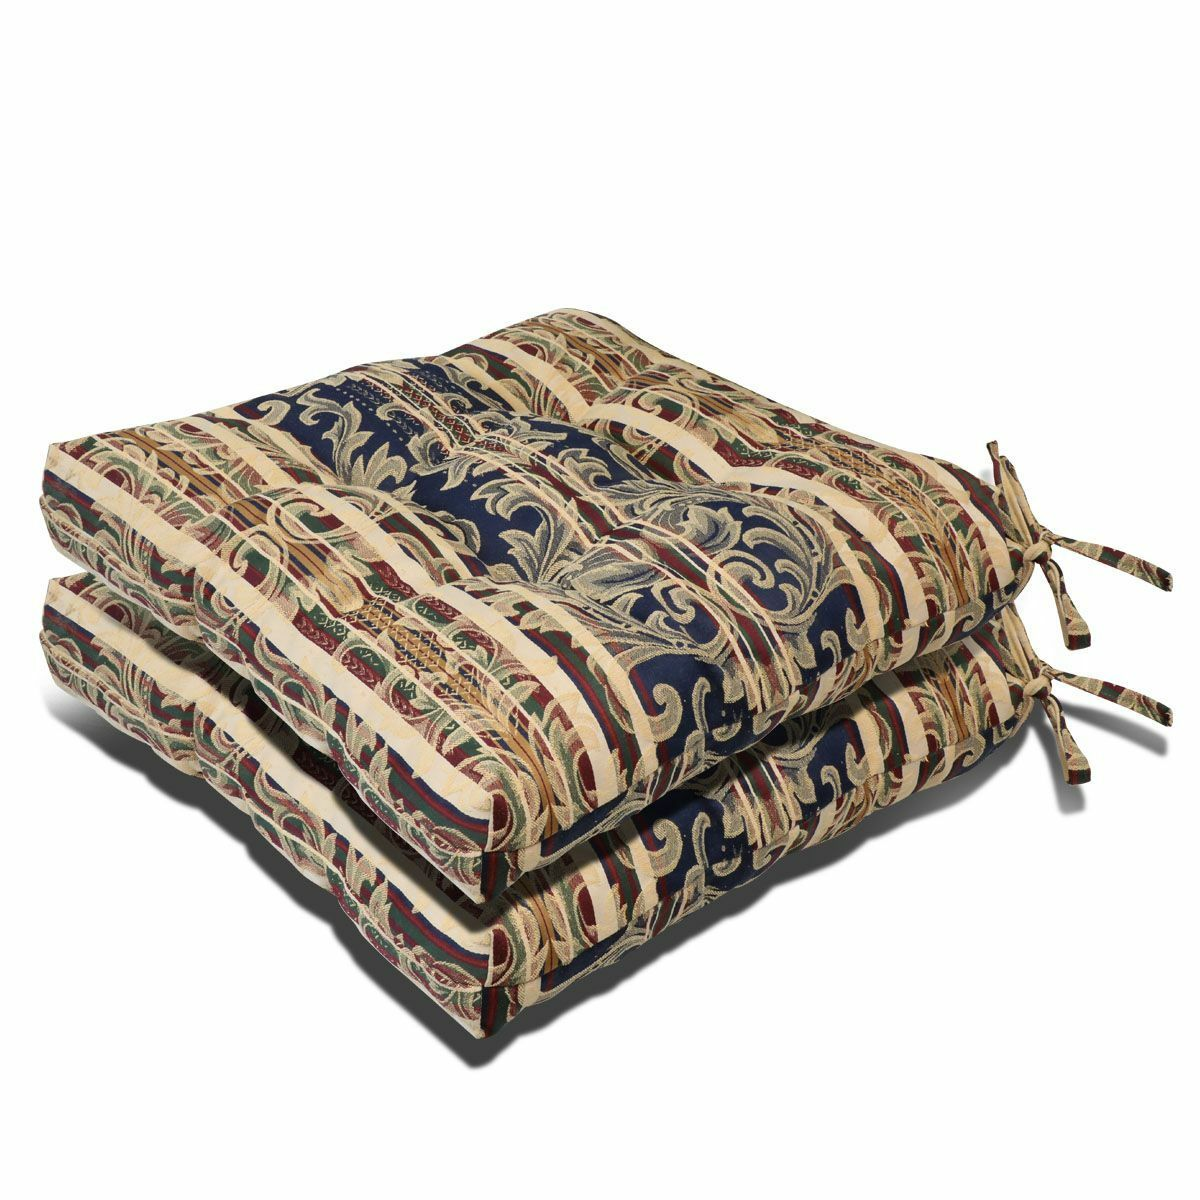 set of 2 made in usa outdoor indoor pretty wicker seat cushion seat pad ebay. Black Bedroom Furniture Sets. Home Design Ideas